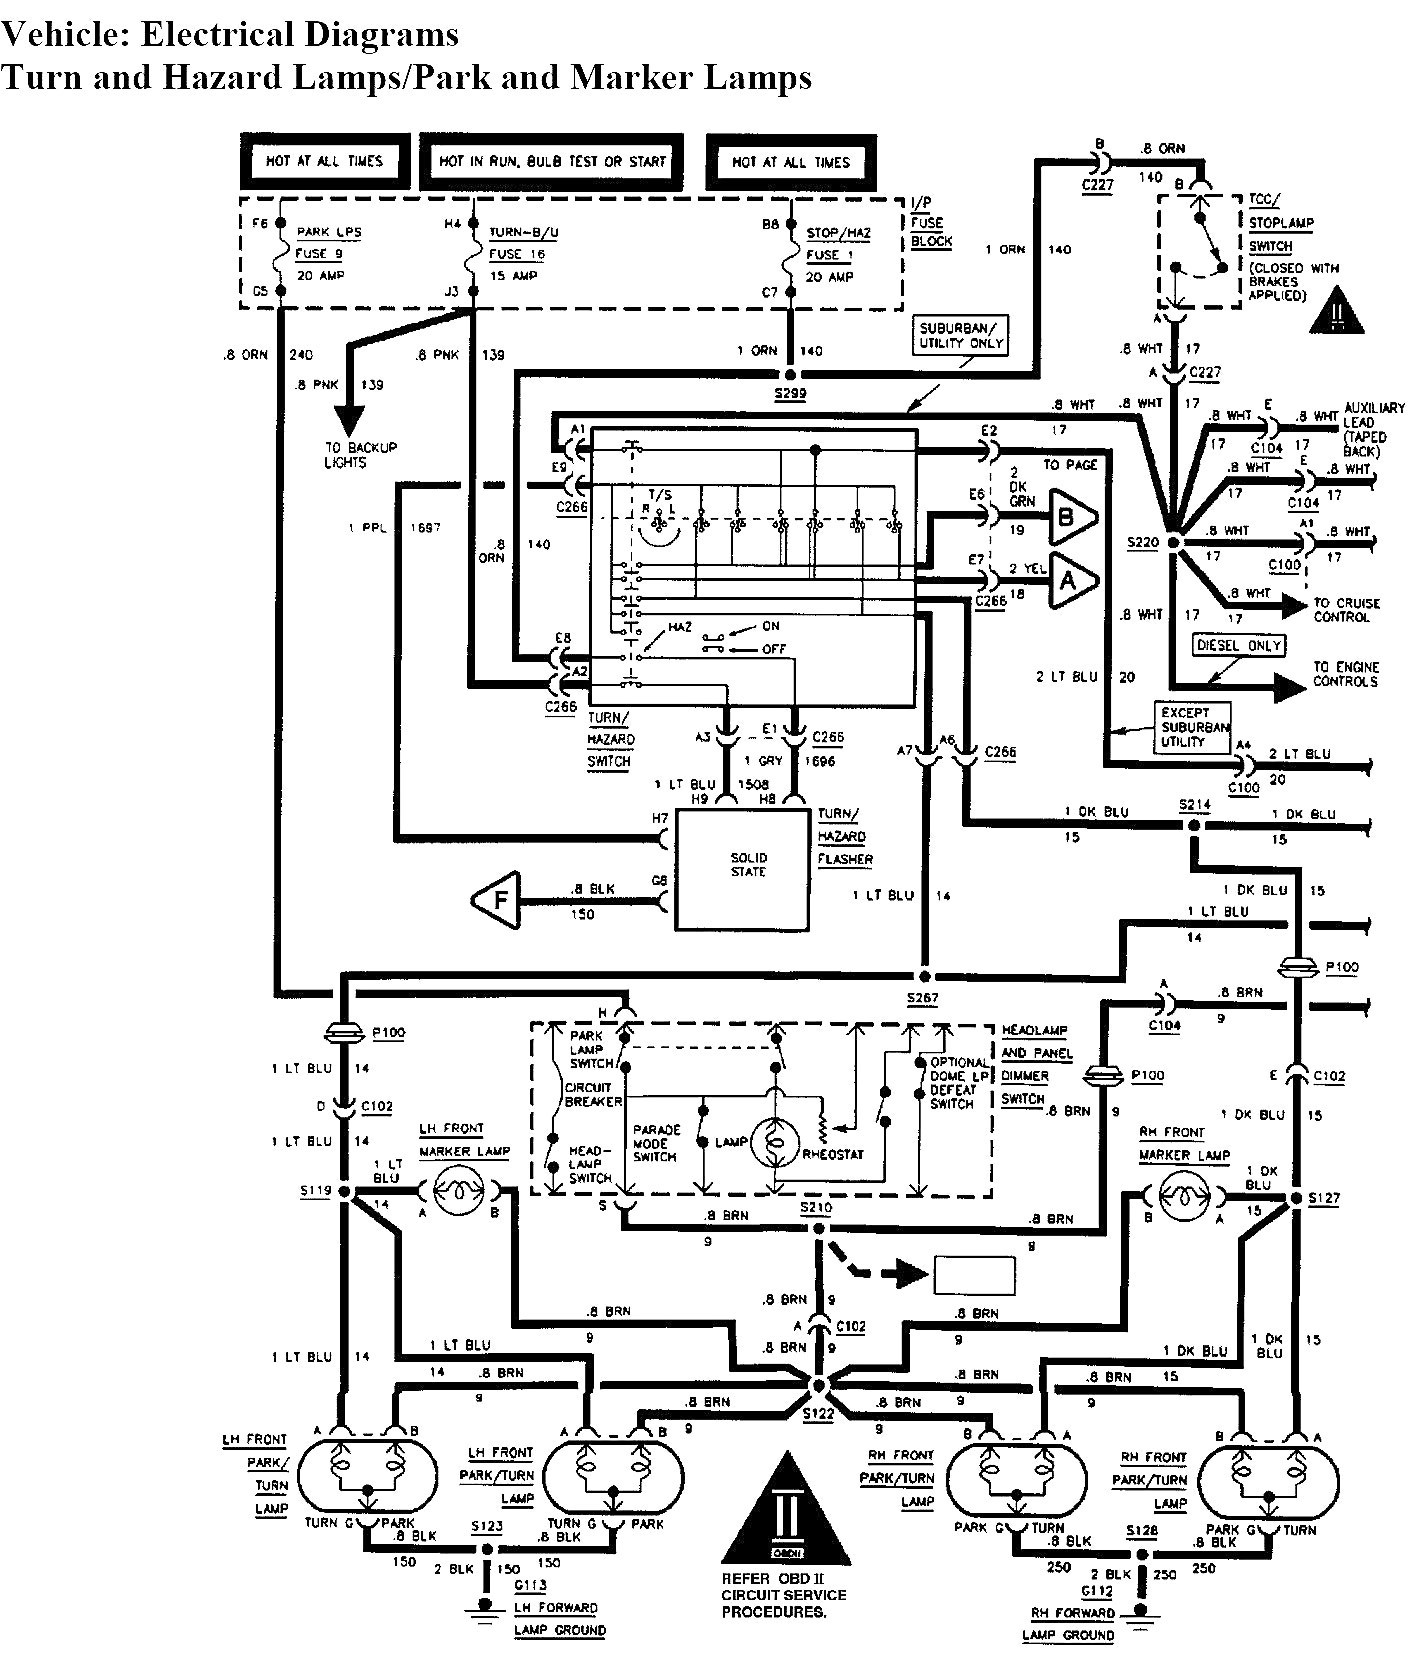 Brake Light Wiring Diagram Chevy 1988 C2500 Chevrolet Beautiful Of